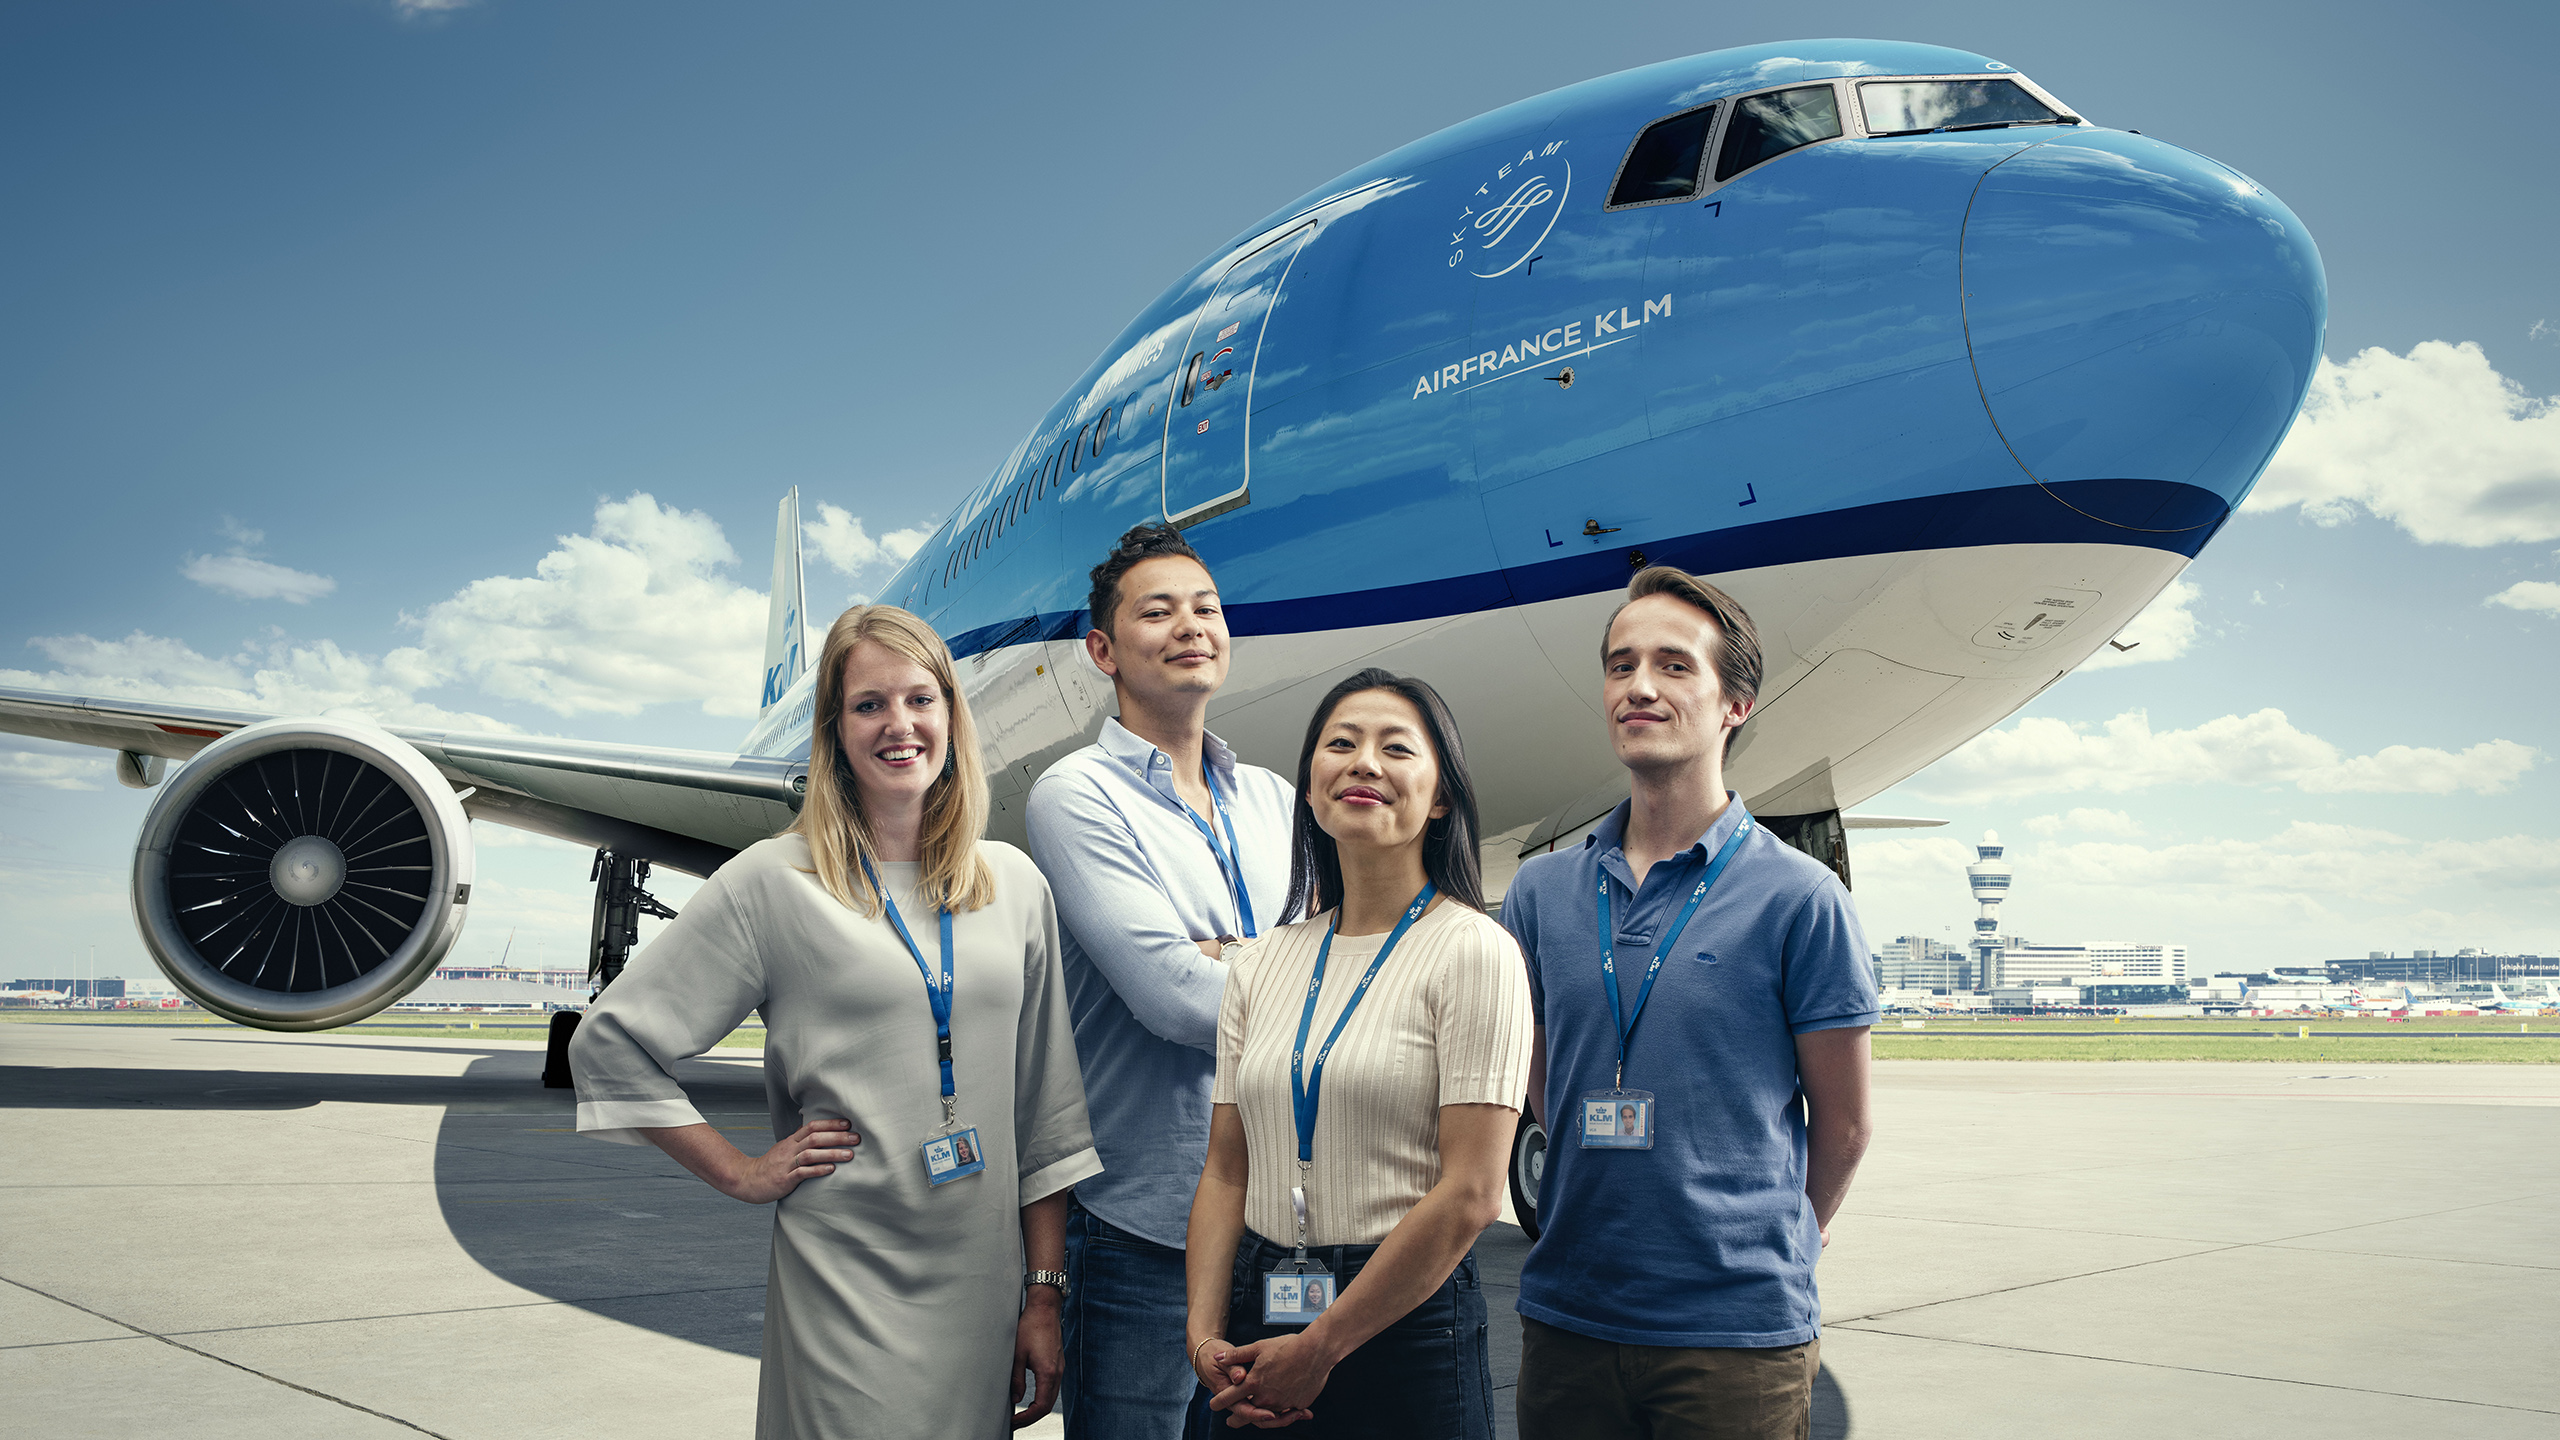 KLM-branding-photography-employer-divisions-work